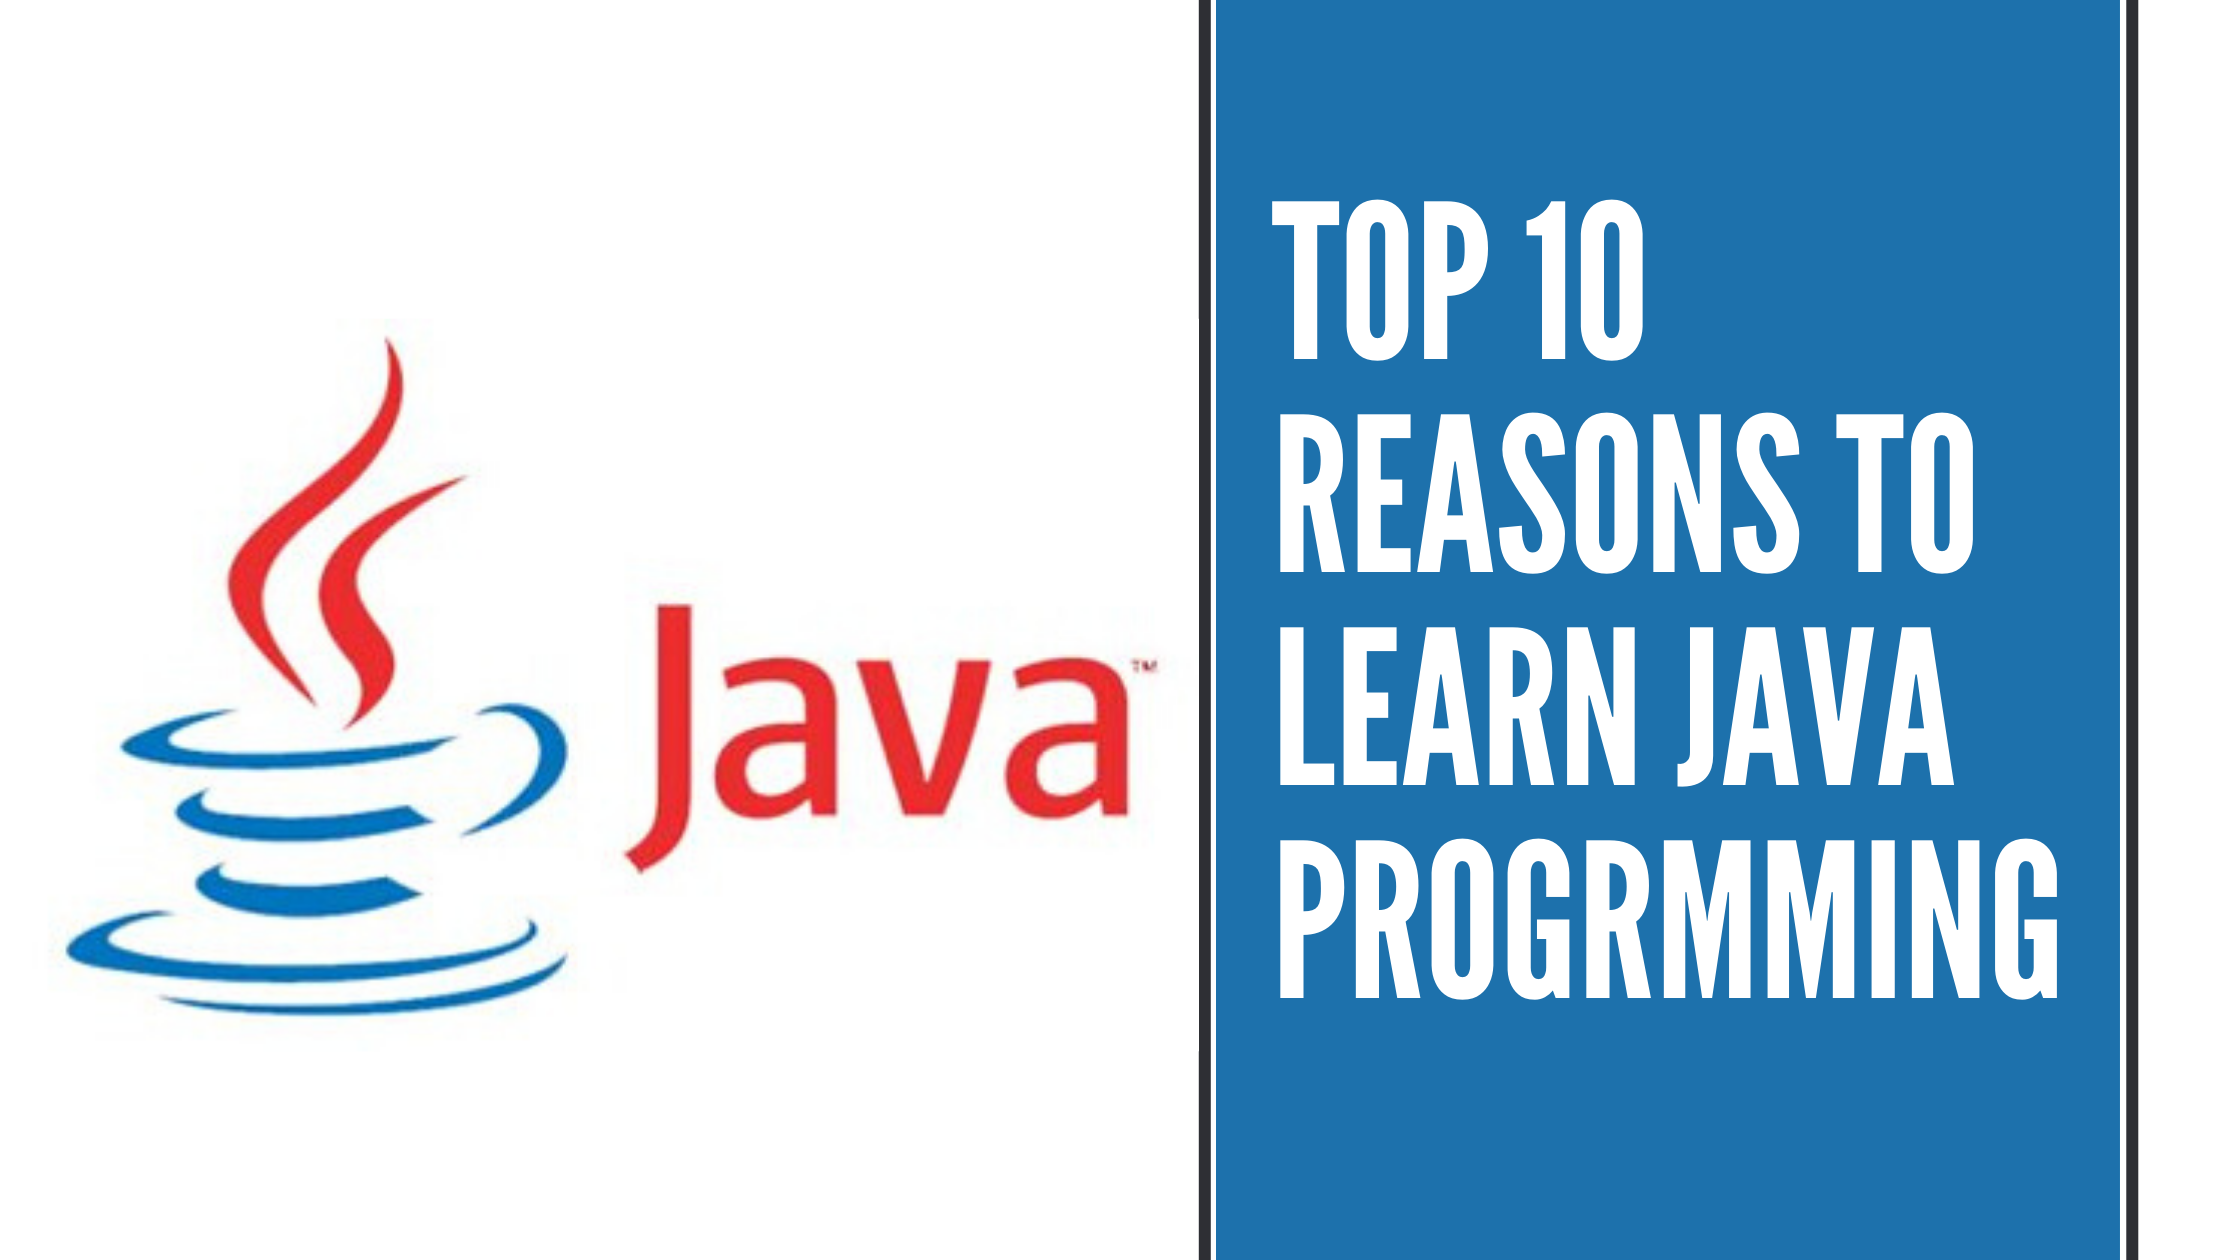 Top 10 reasons to learn Java Programming